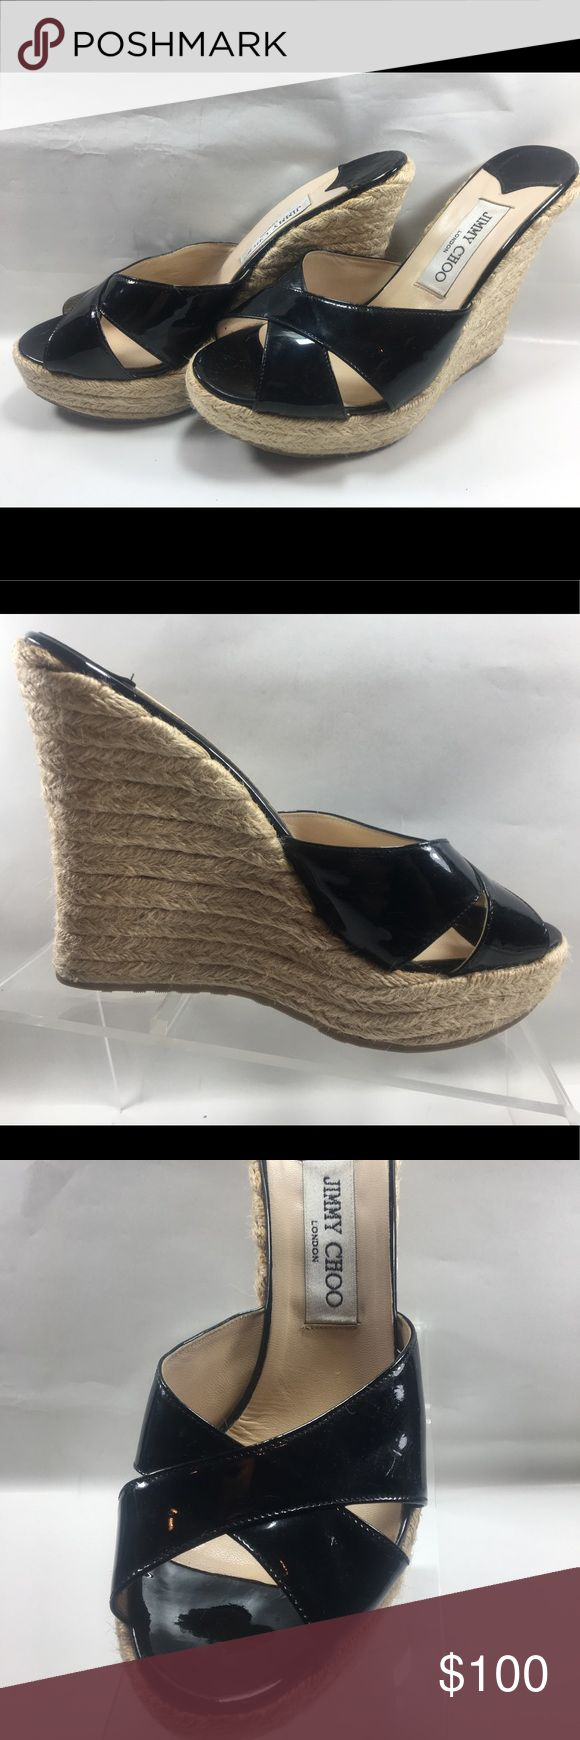 Jimmy Choo Black Patent Leather Navy Wedge Sandal Very Good Condition Some Normal Wear Including Scuffing & Minor Sole Wear See Pictures Jimmy Choo London Black Patent Leather Navy Wedge Sandals Size 9 Shoe #S221 Jimmy Choo Shoes Wedges